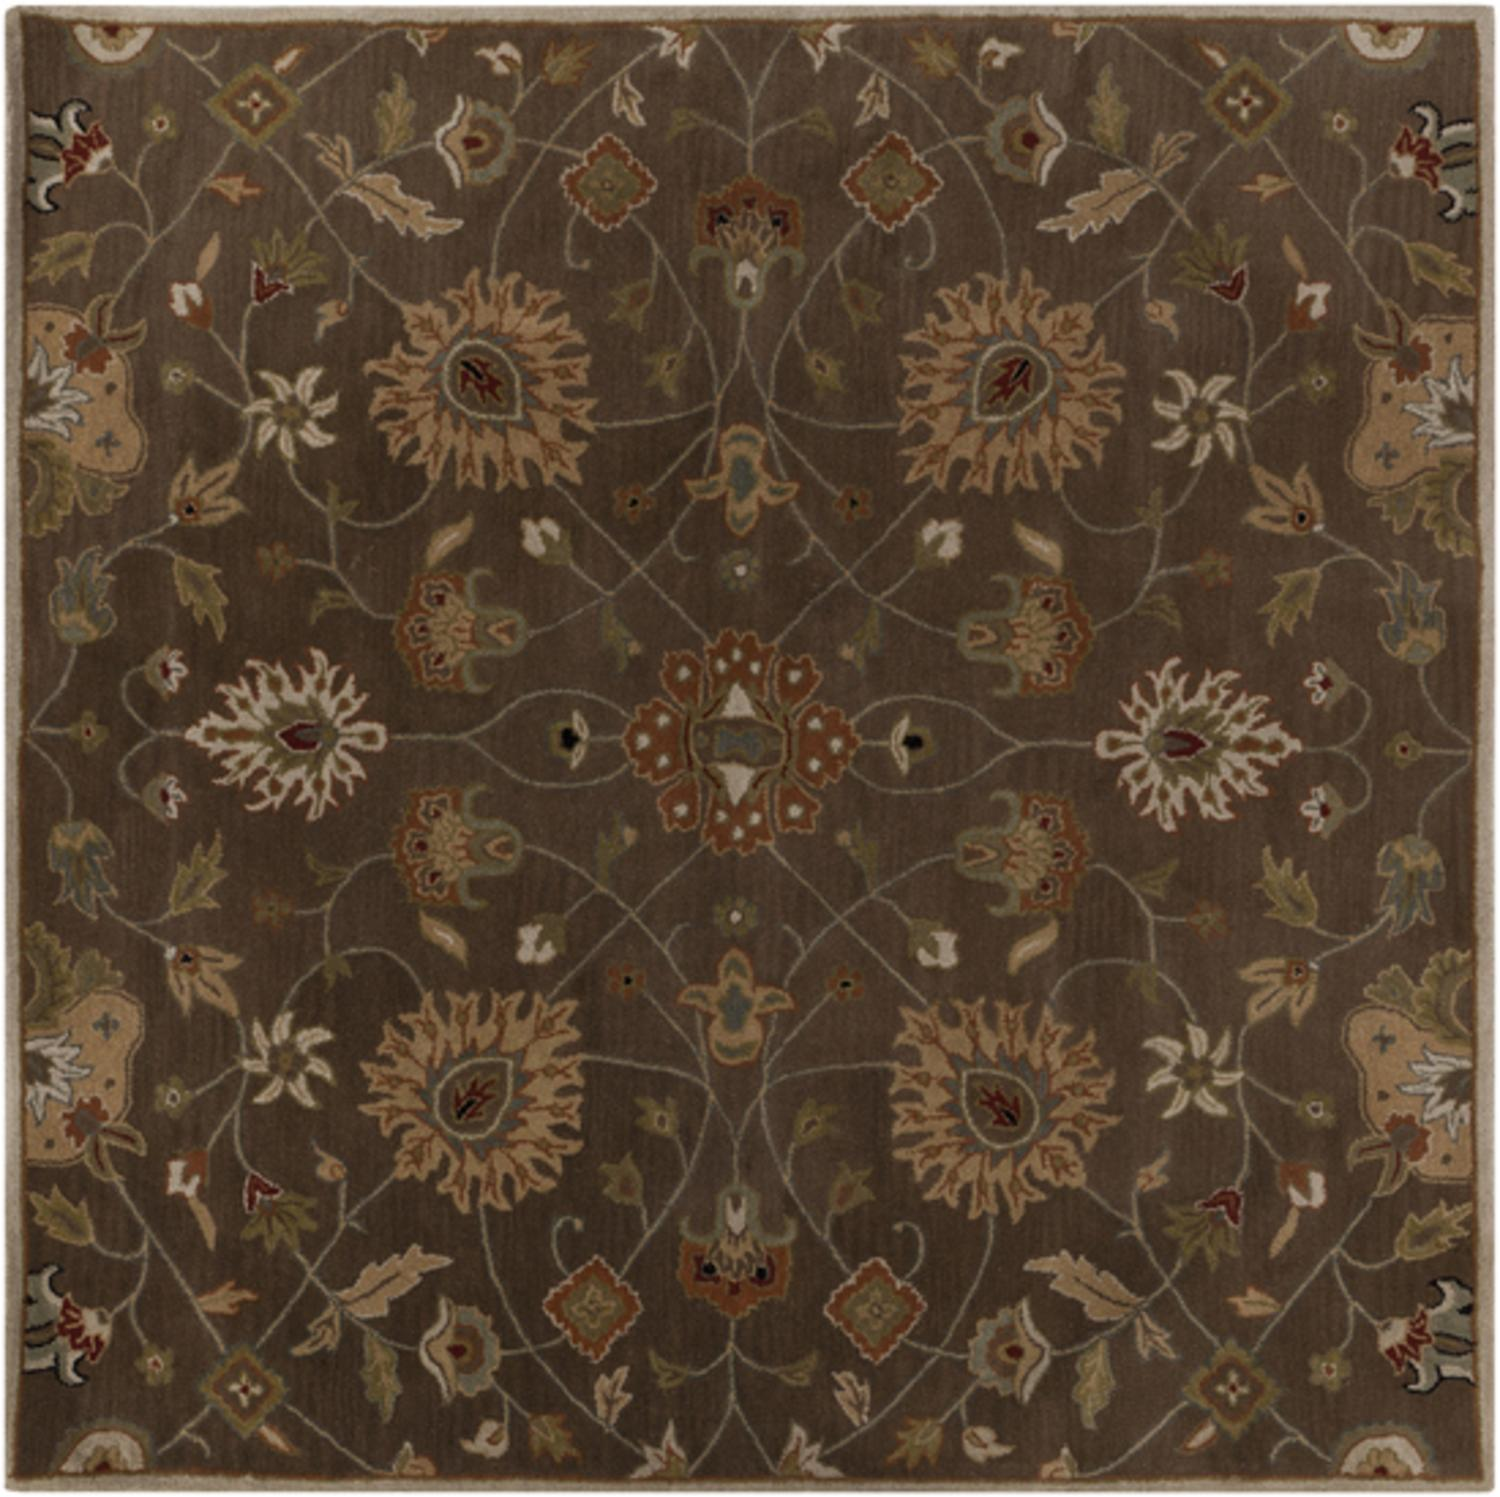 4' x 4' Valeria Safari Tan and Dark Brown Hand Tufted Square Wool Area Throw Rug